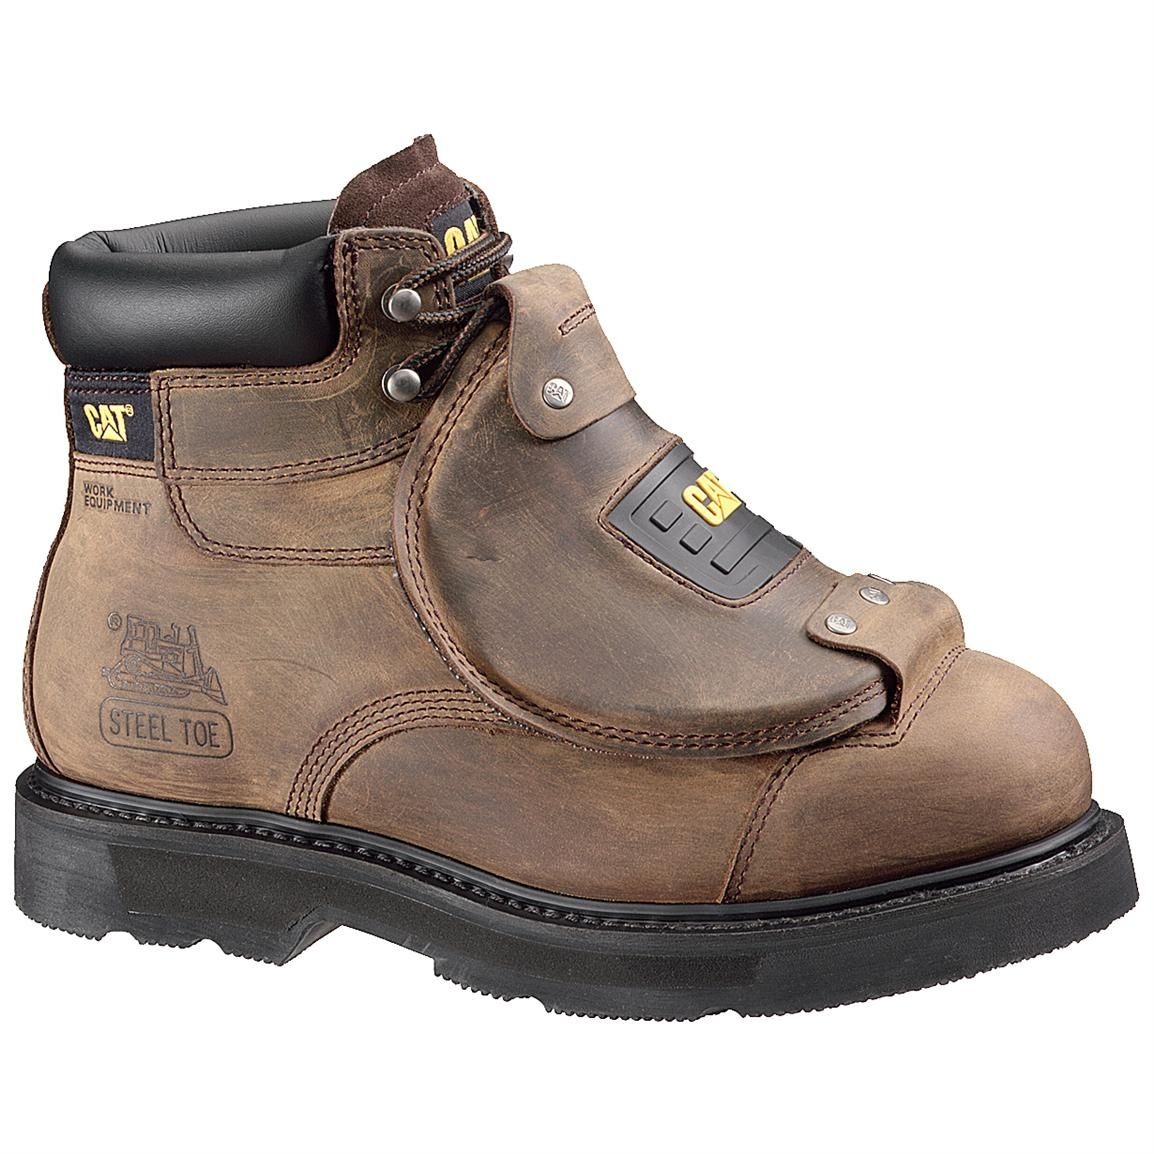 Men's CAT® 6 inch Assault Steel Toe Work Boots, Brown | Steel toe ...